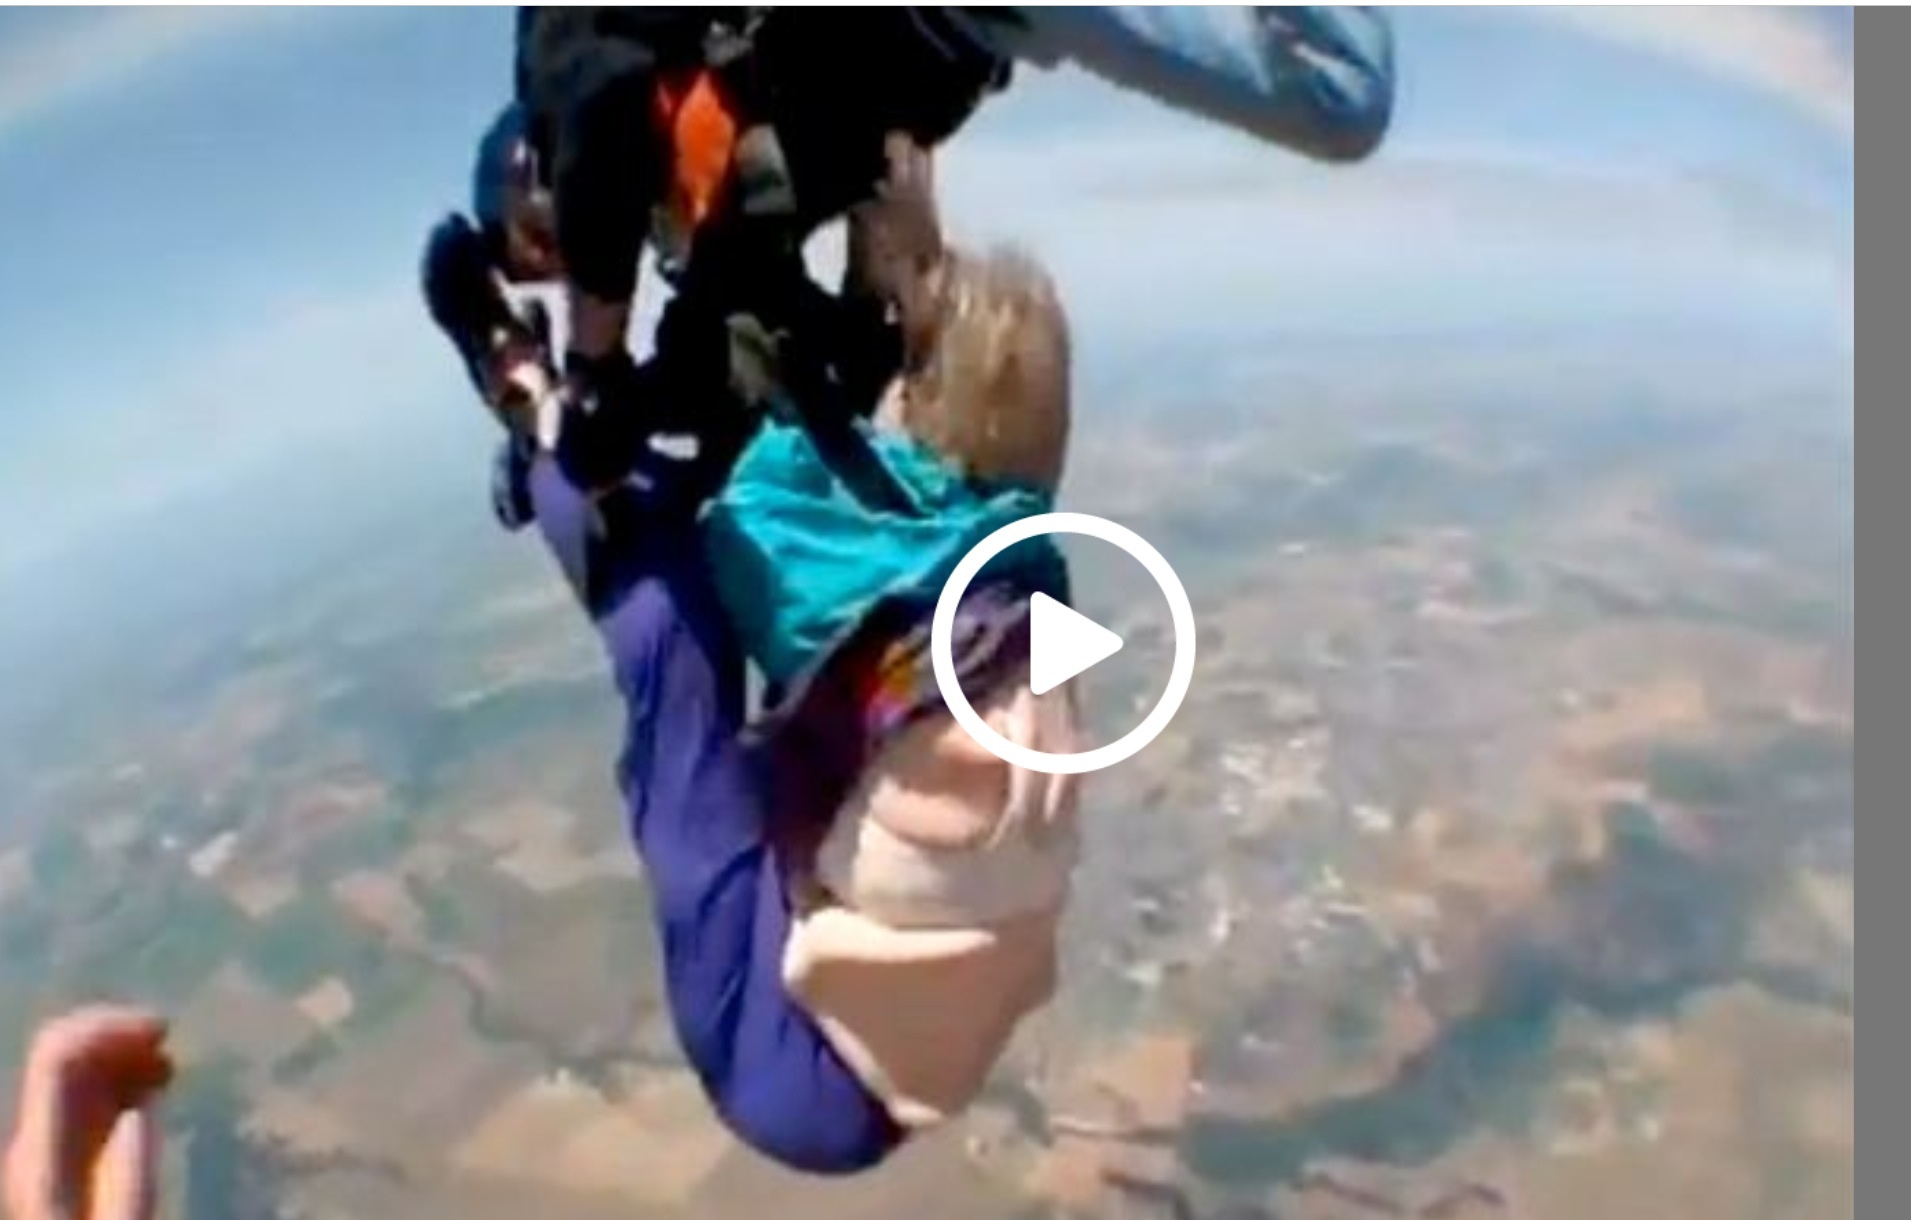 80 Year Old Woman's Sky Dive Goes Terribly Wrong